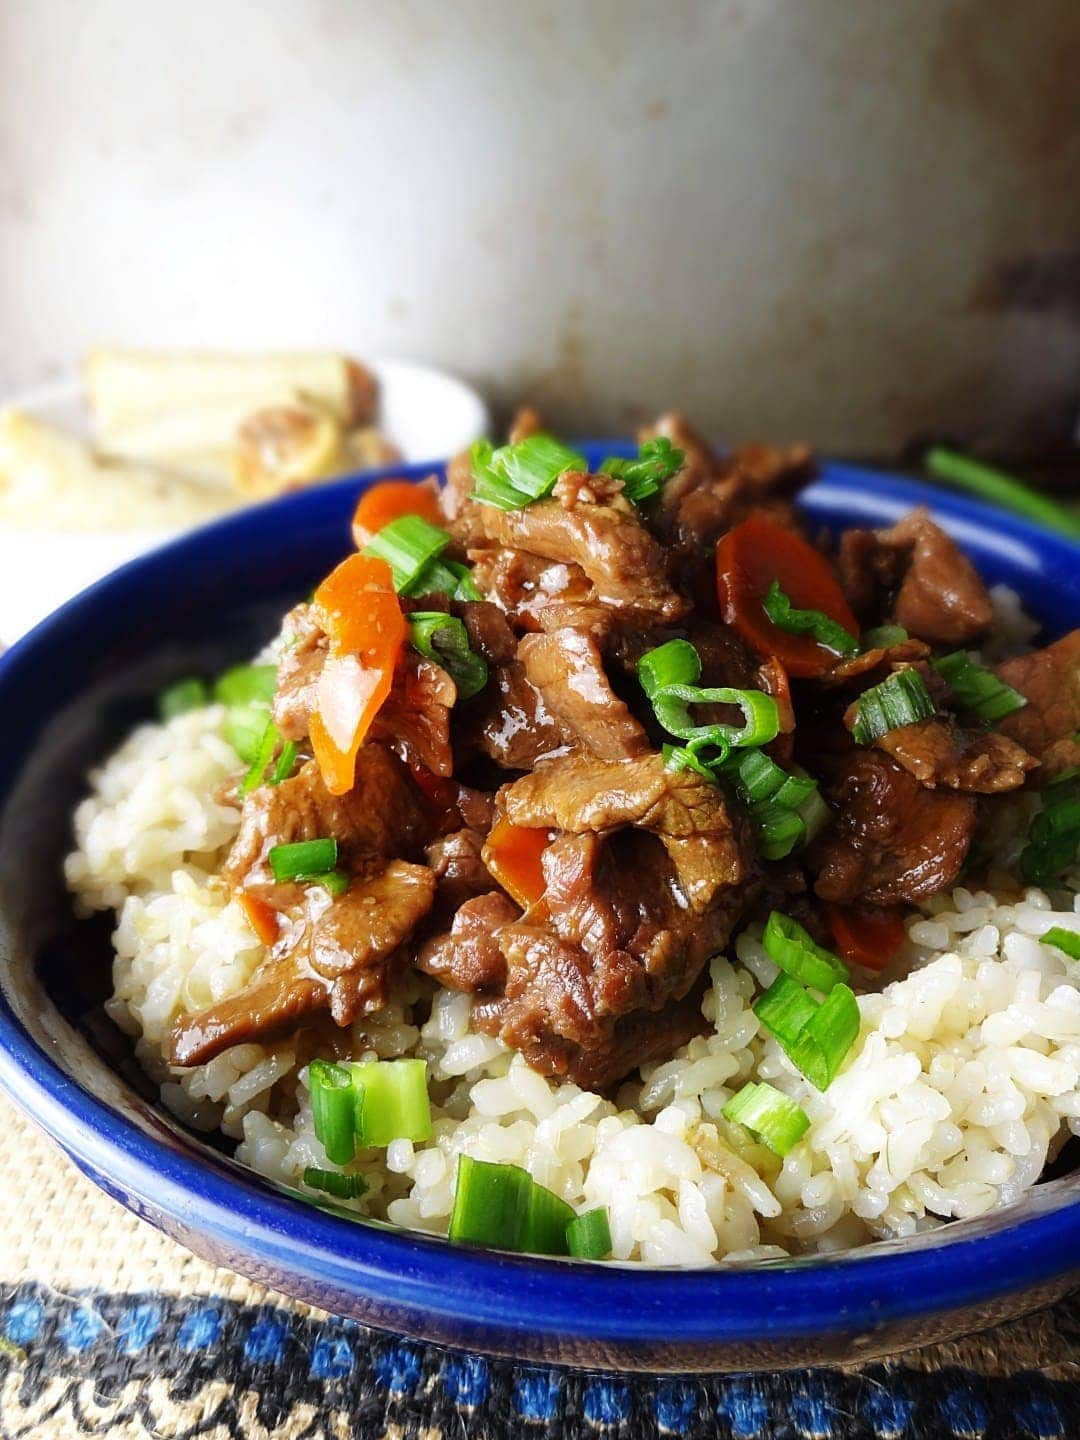 A plate of beef, rice and broccoli